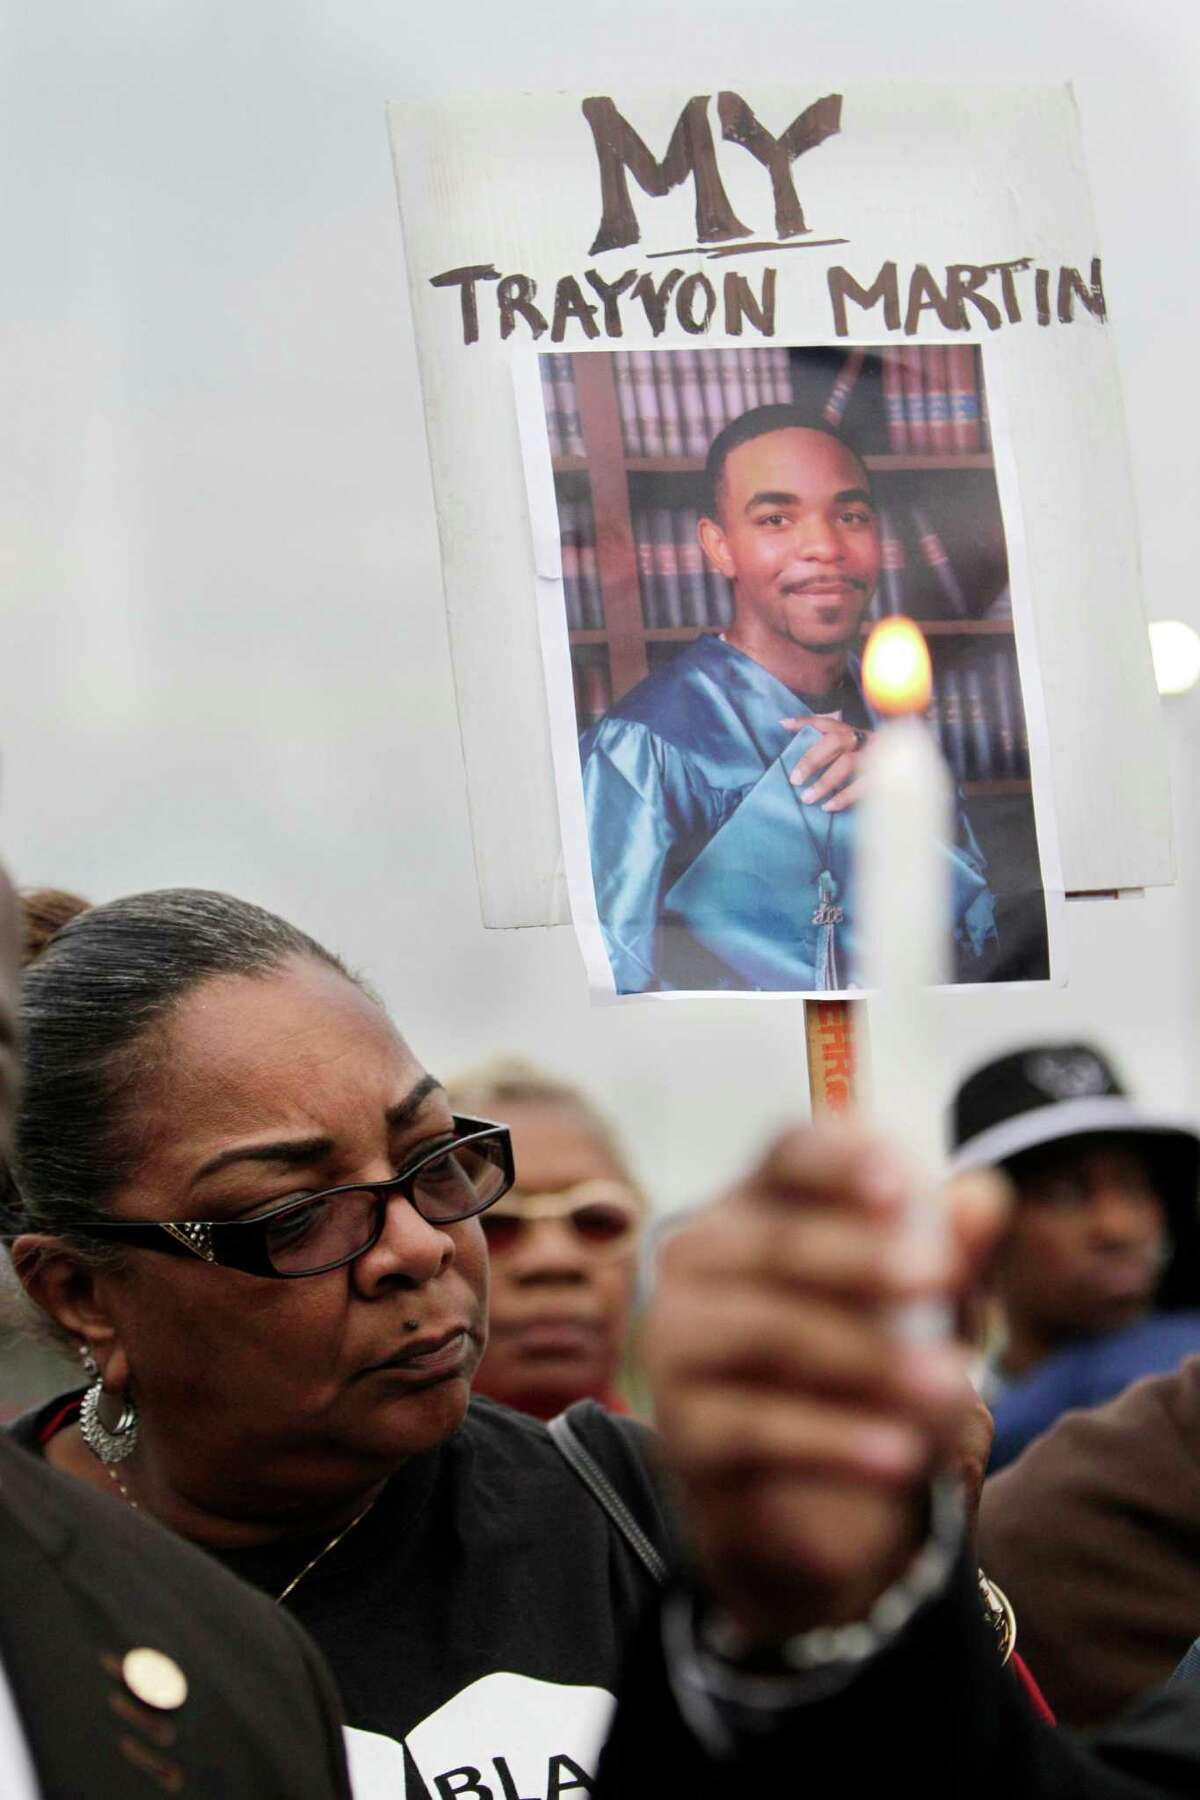 Kathy Blueford-Daniels, holds a photo of her murdered son, while she attends a vigil for Jordan Baker in the parking lot where he was shot by police on Sunday, Dec. 21, 2014, in Houston.